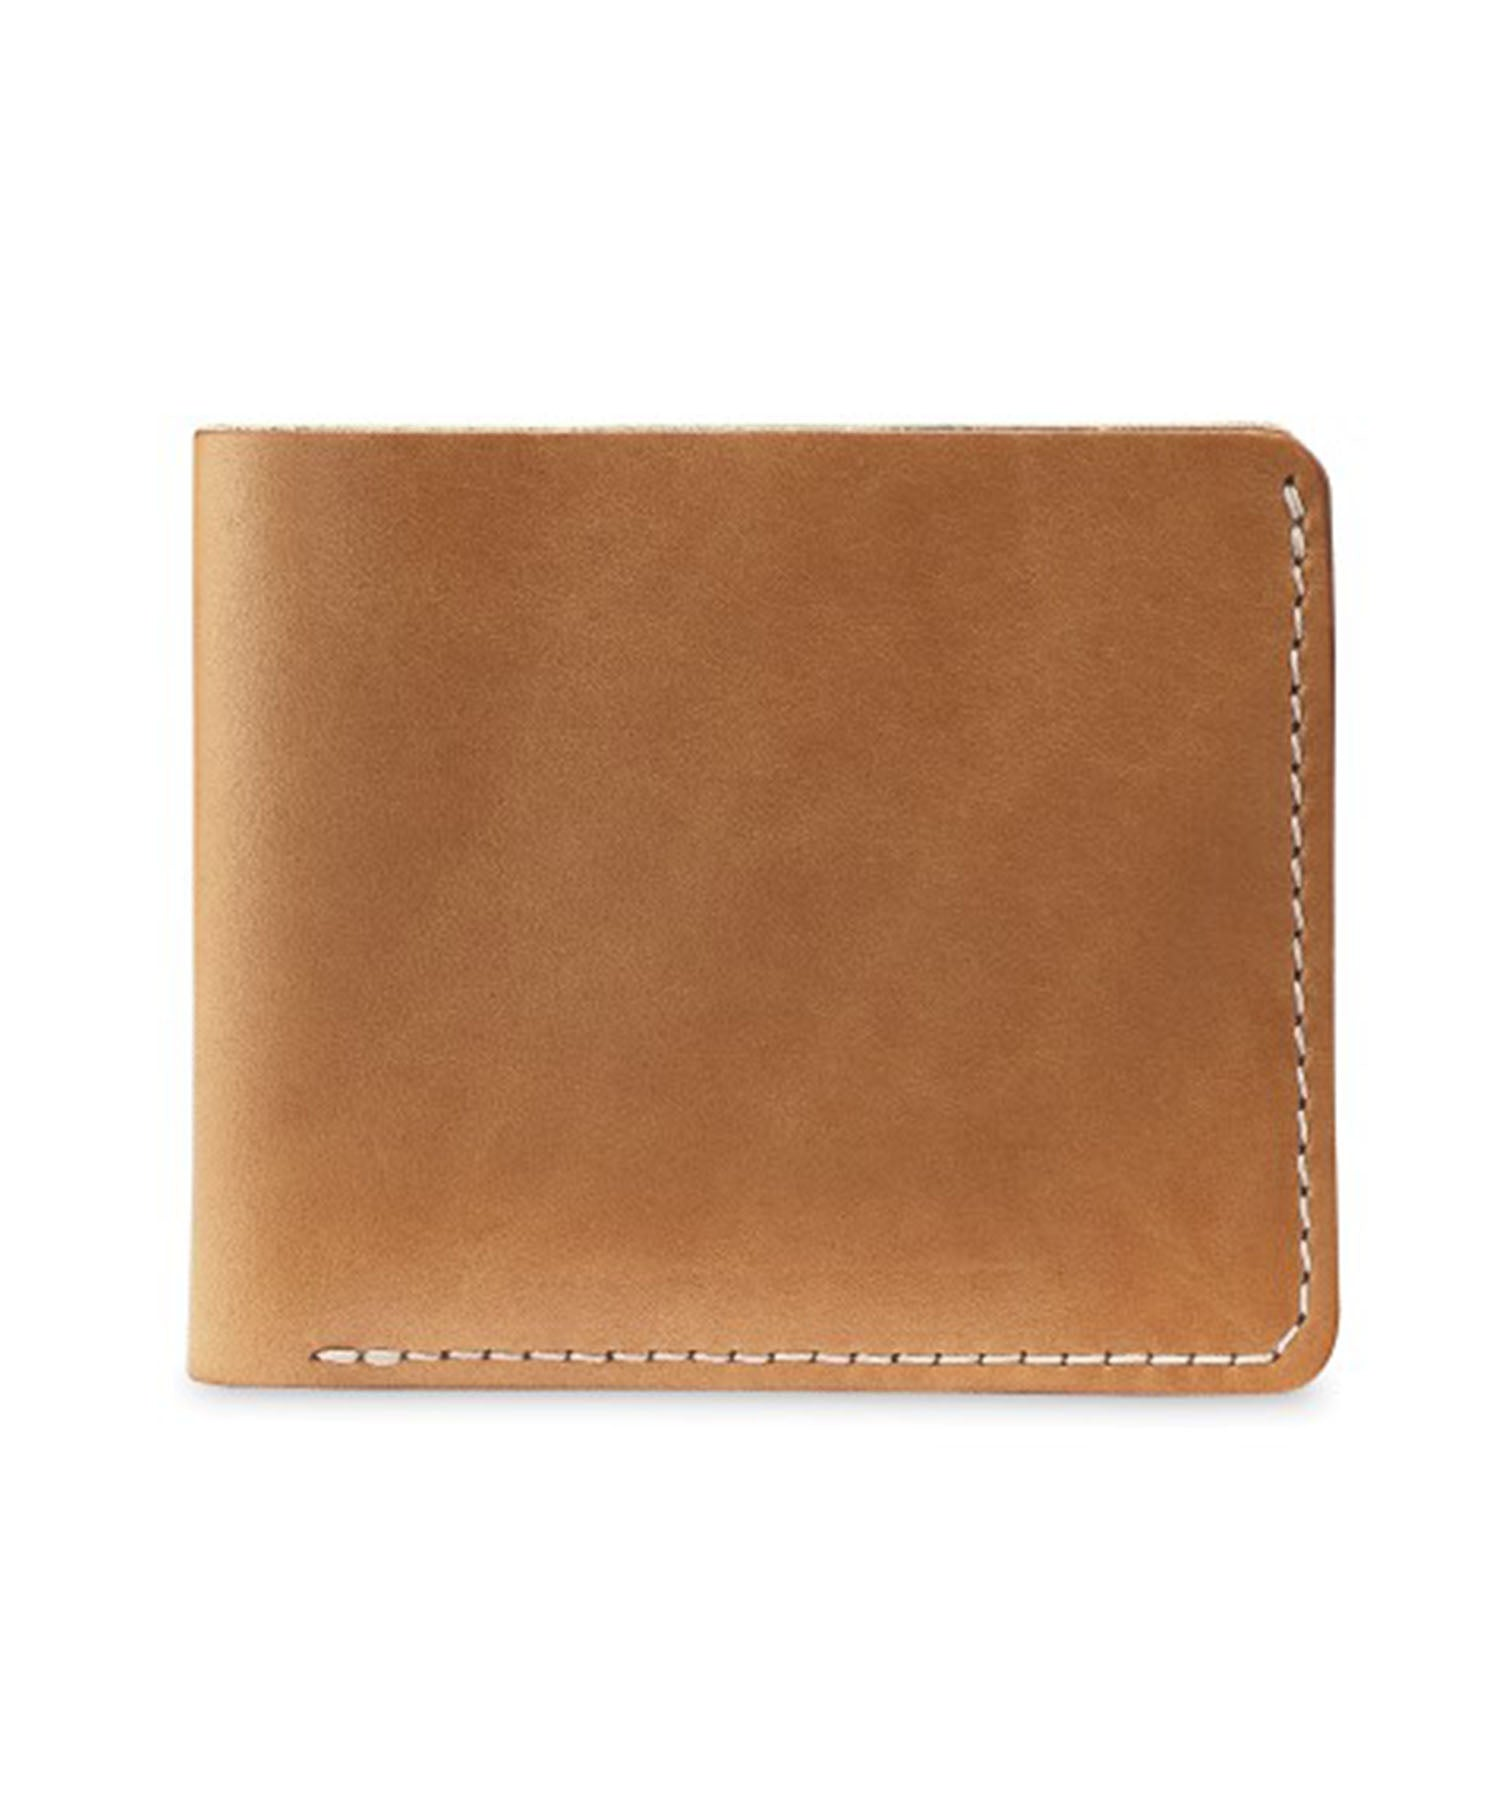 Red Wing Leather Classic Bifold Wallet in London Tan